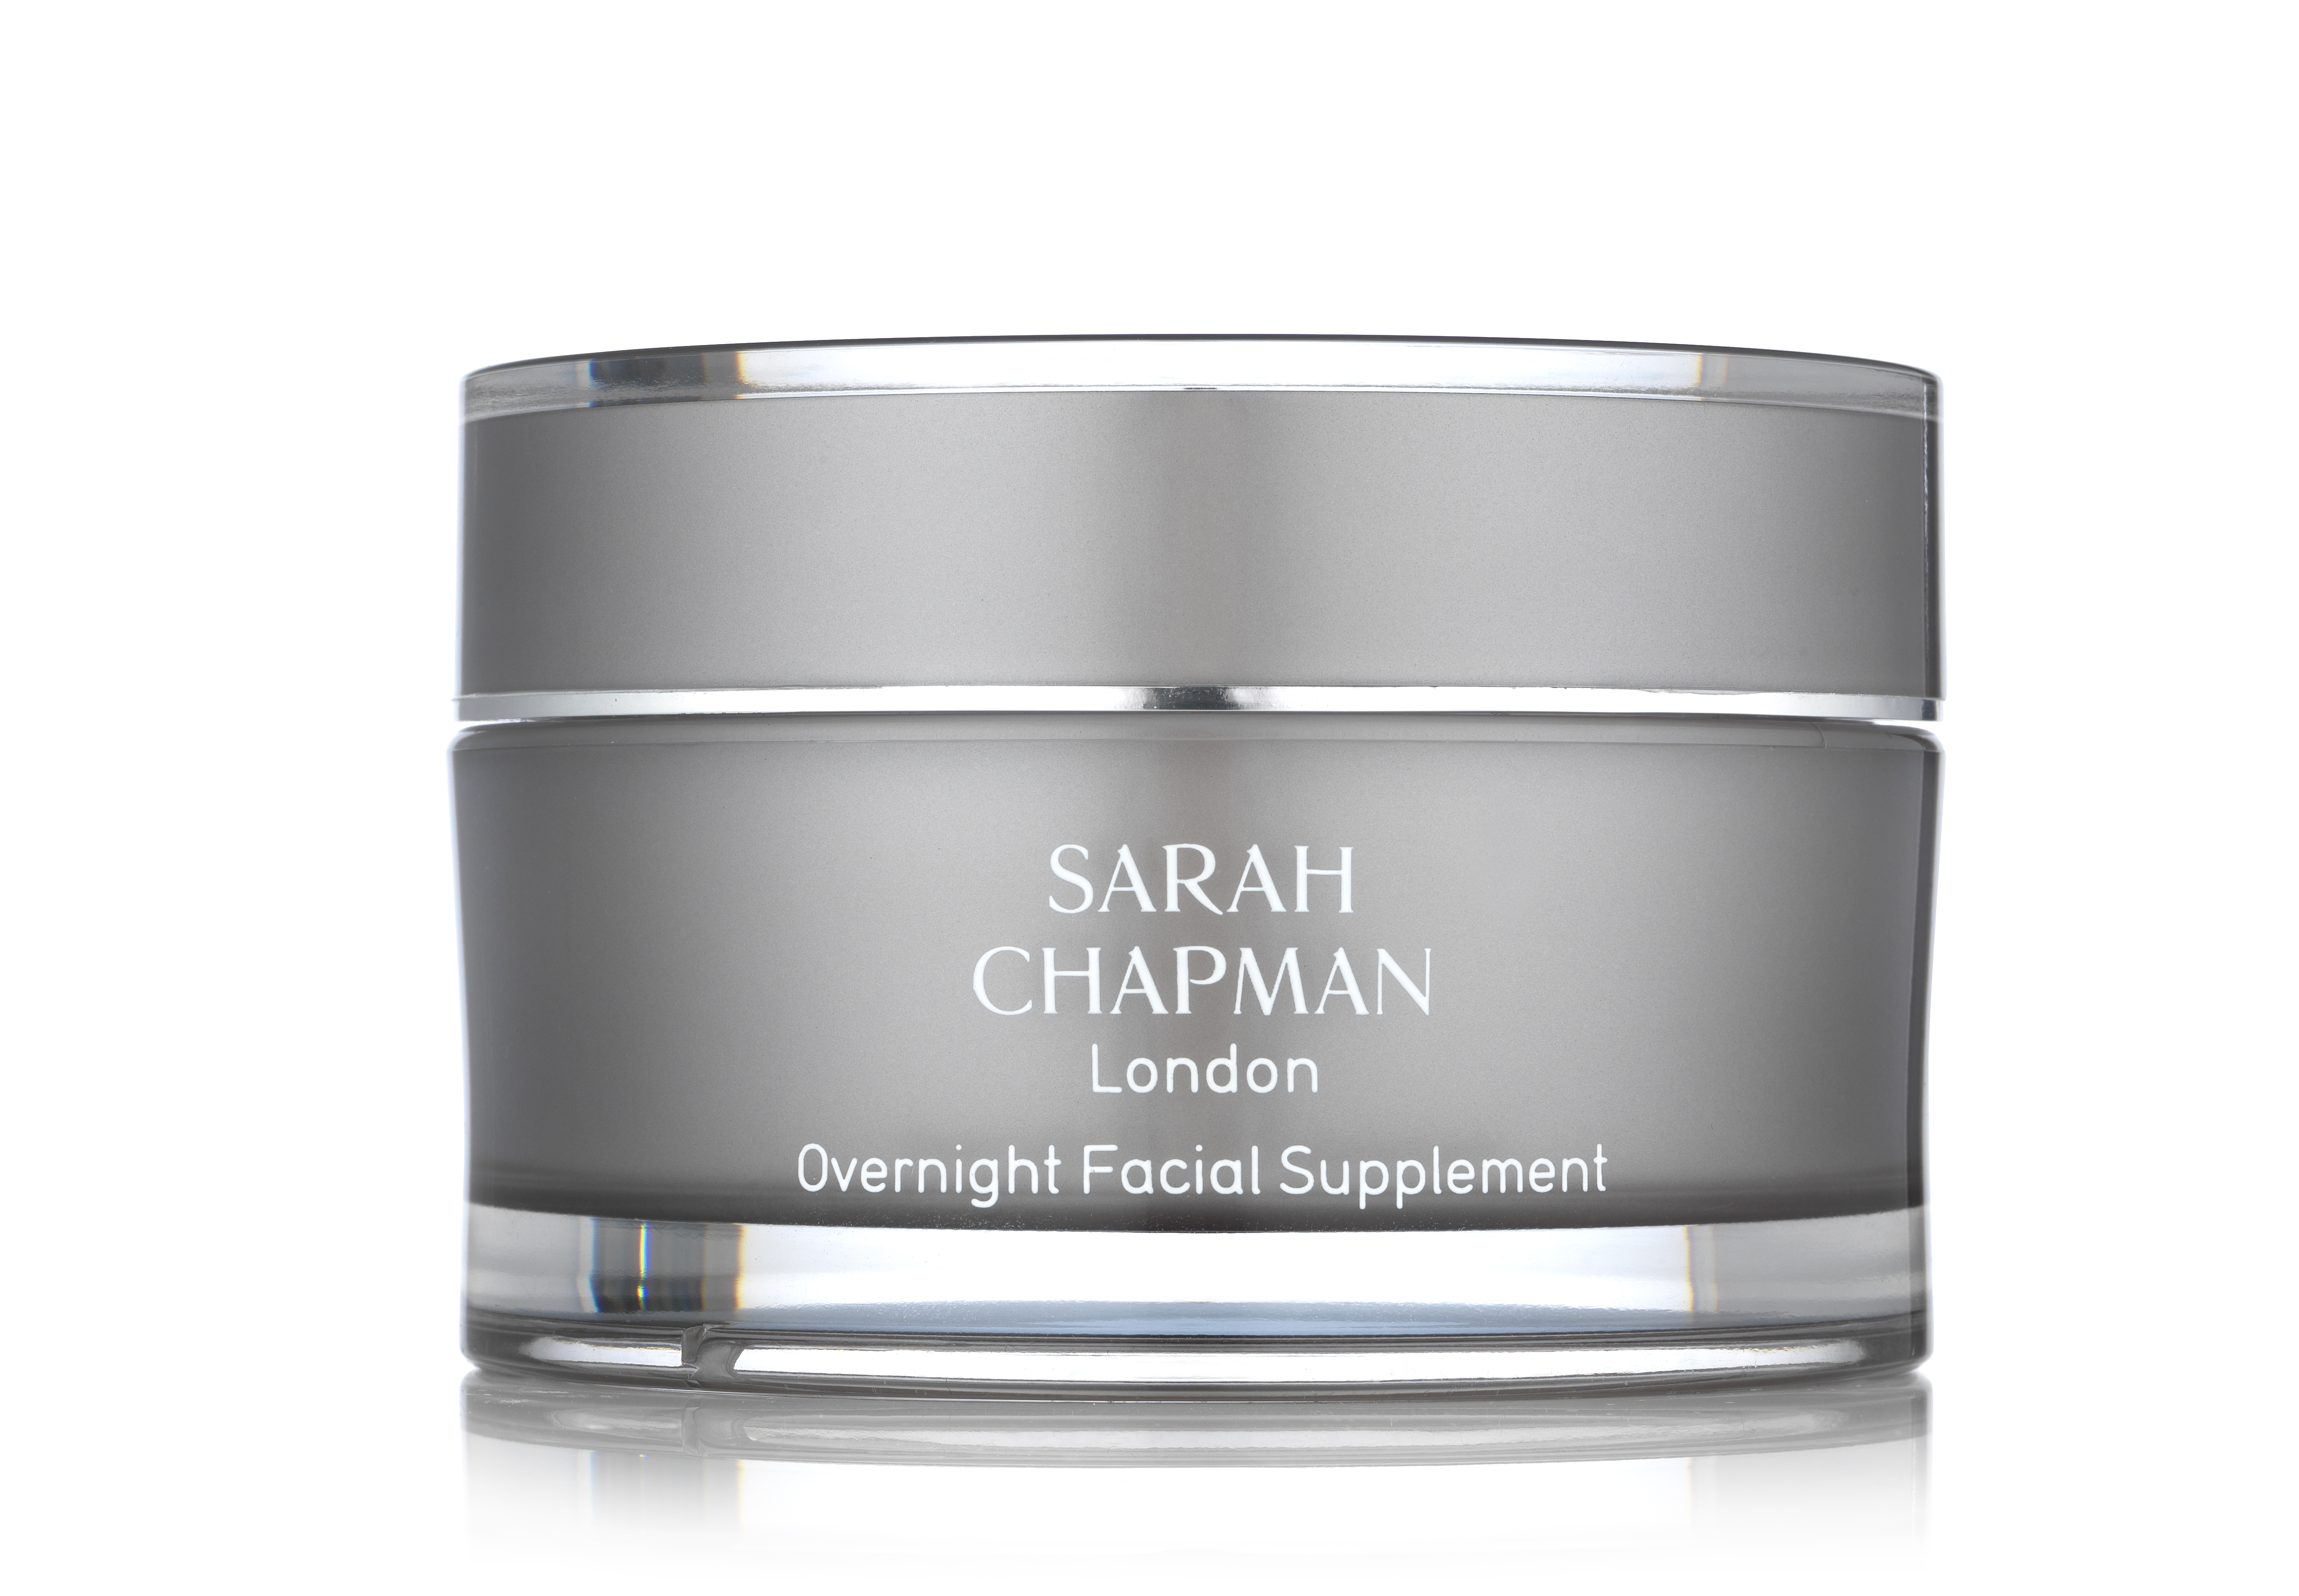 overnight facial supplement image